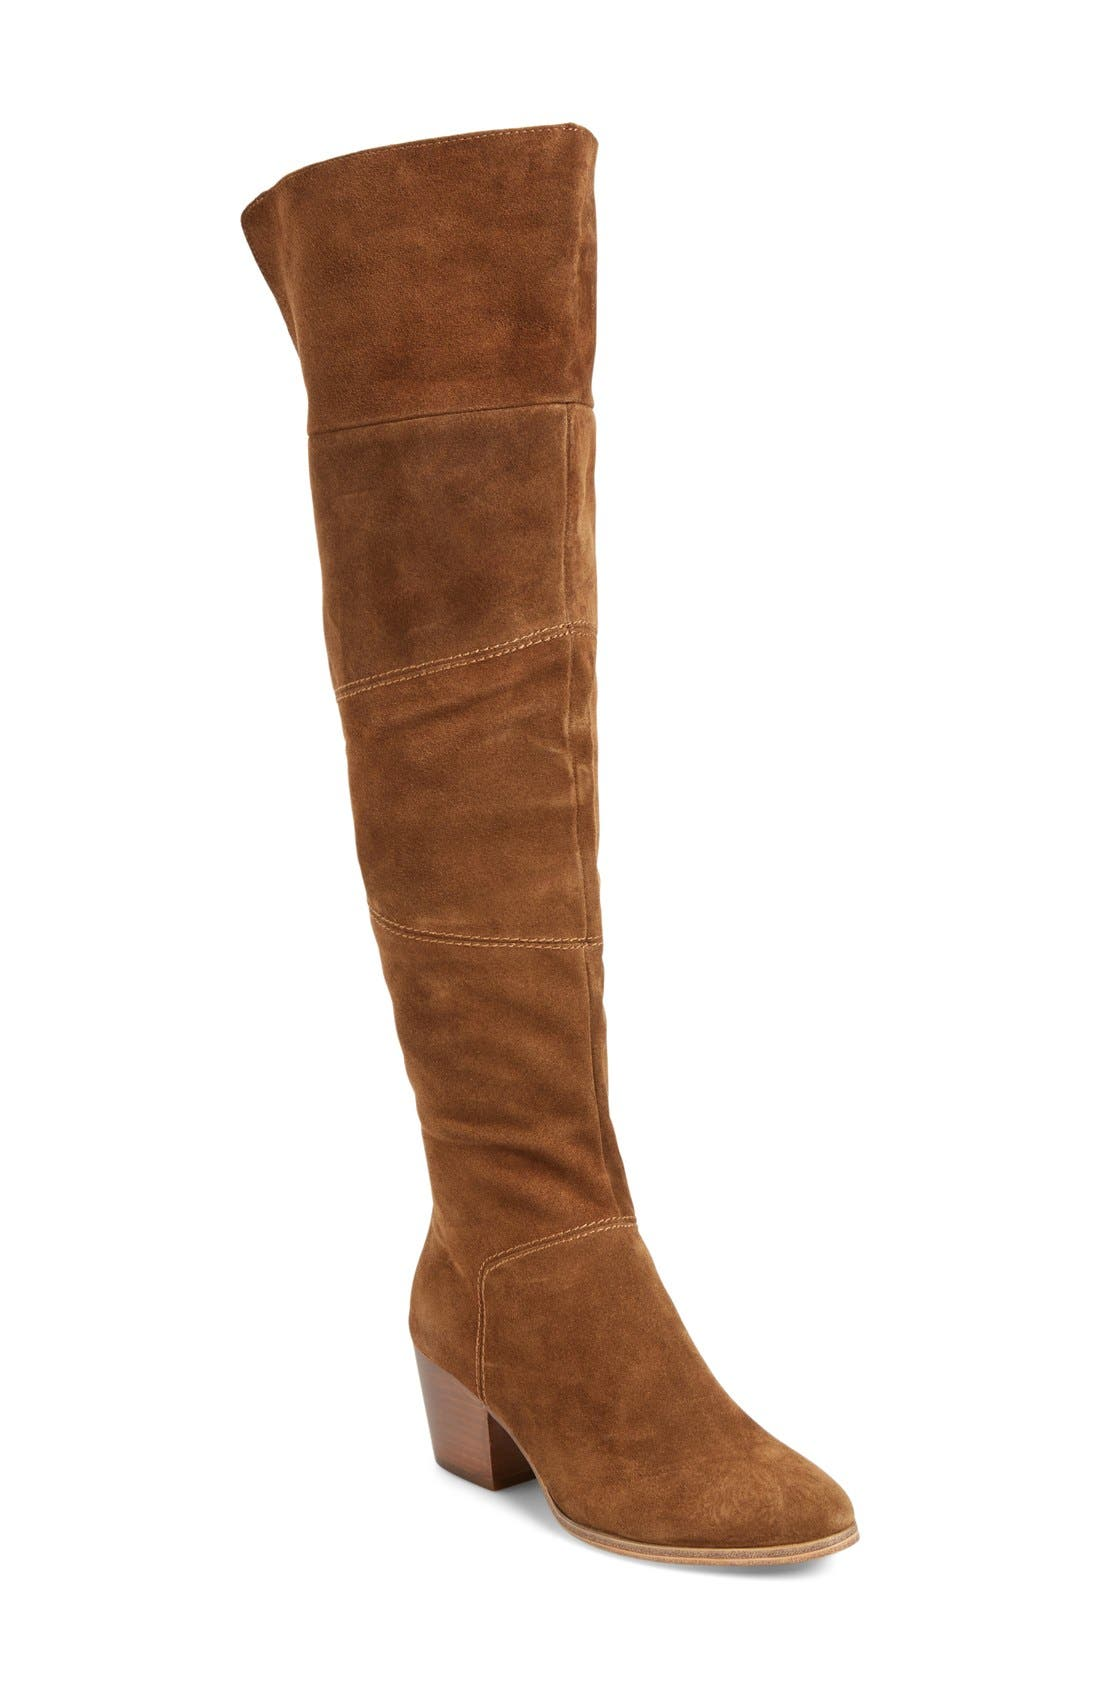 Melbourne Over the Knee Boot,                             Main thumbnail 1, color,                             Brown Suede